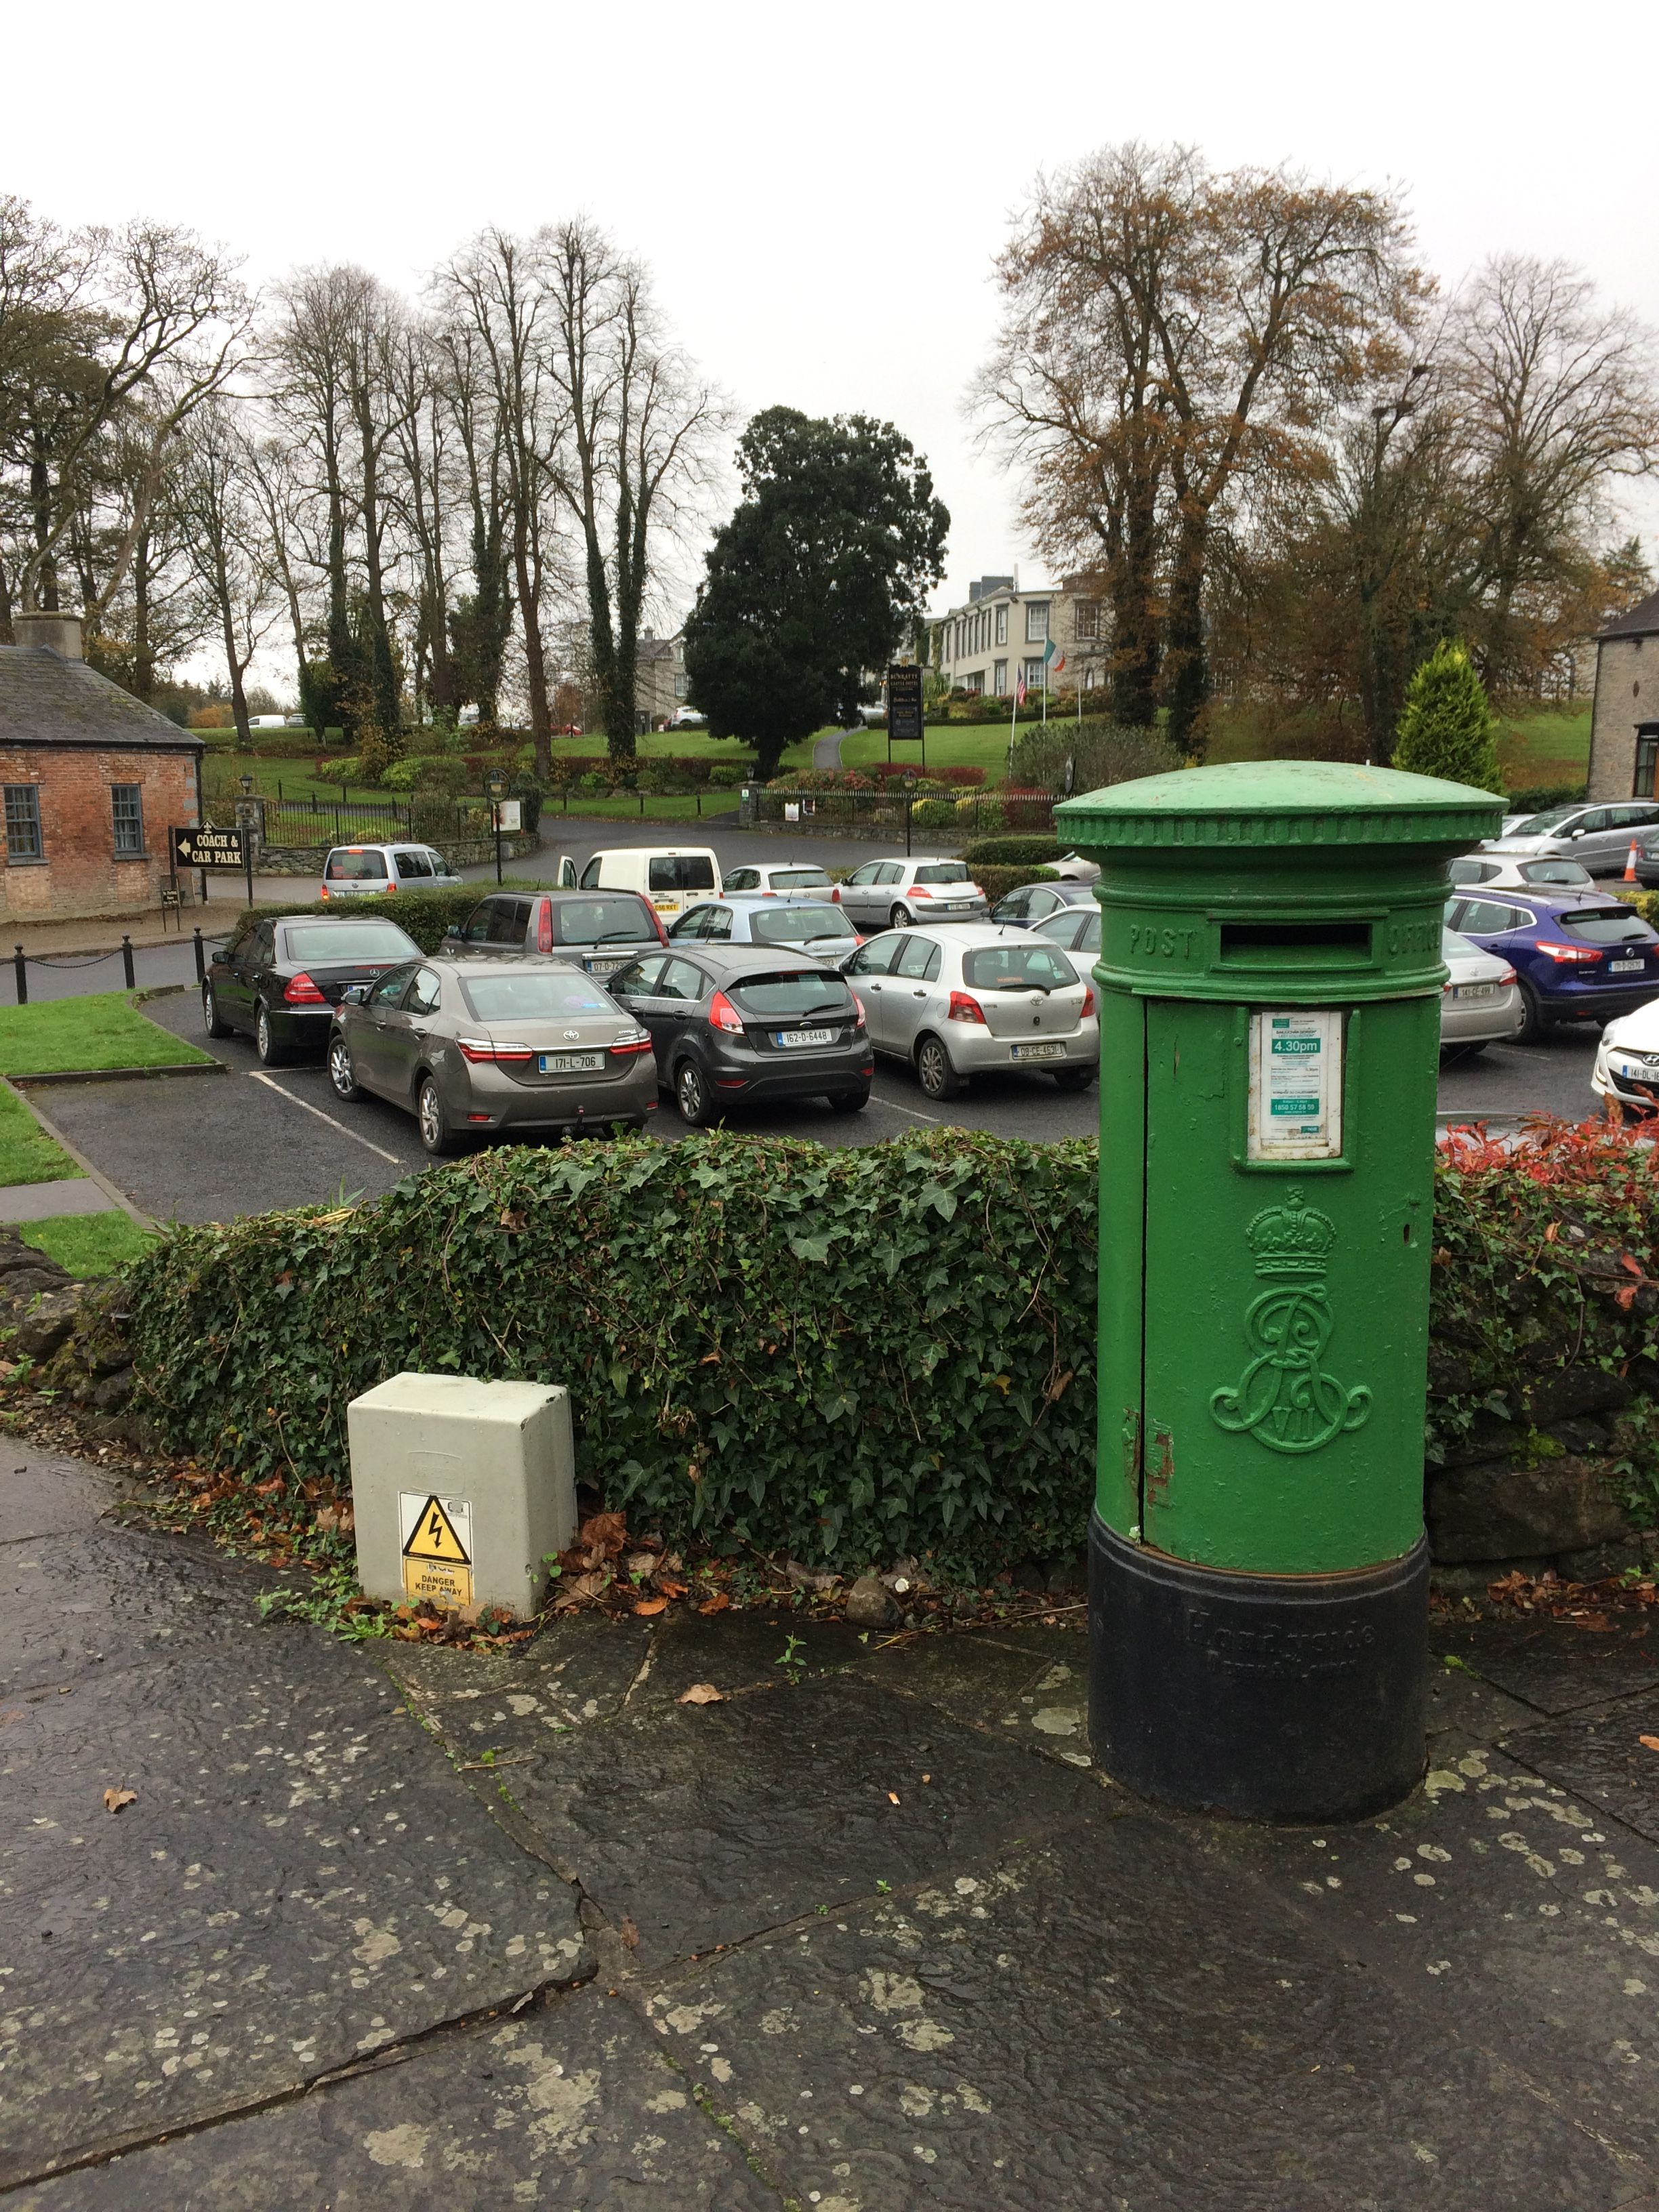 Irish post box from British rule times painted green since independence at Bunratty Co.Clare